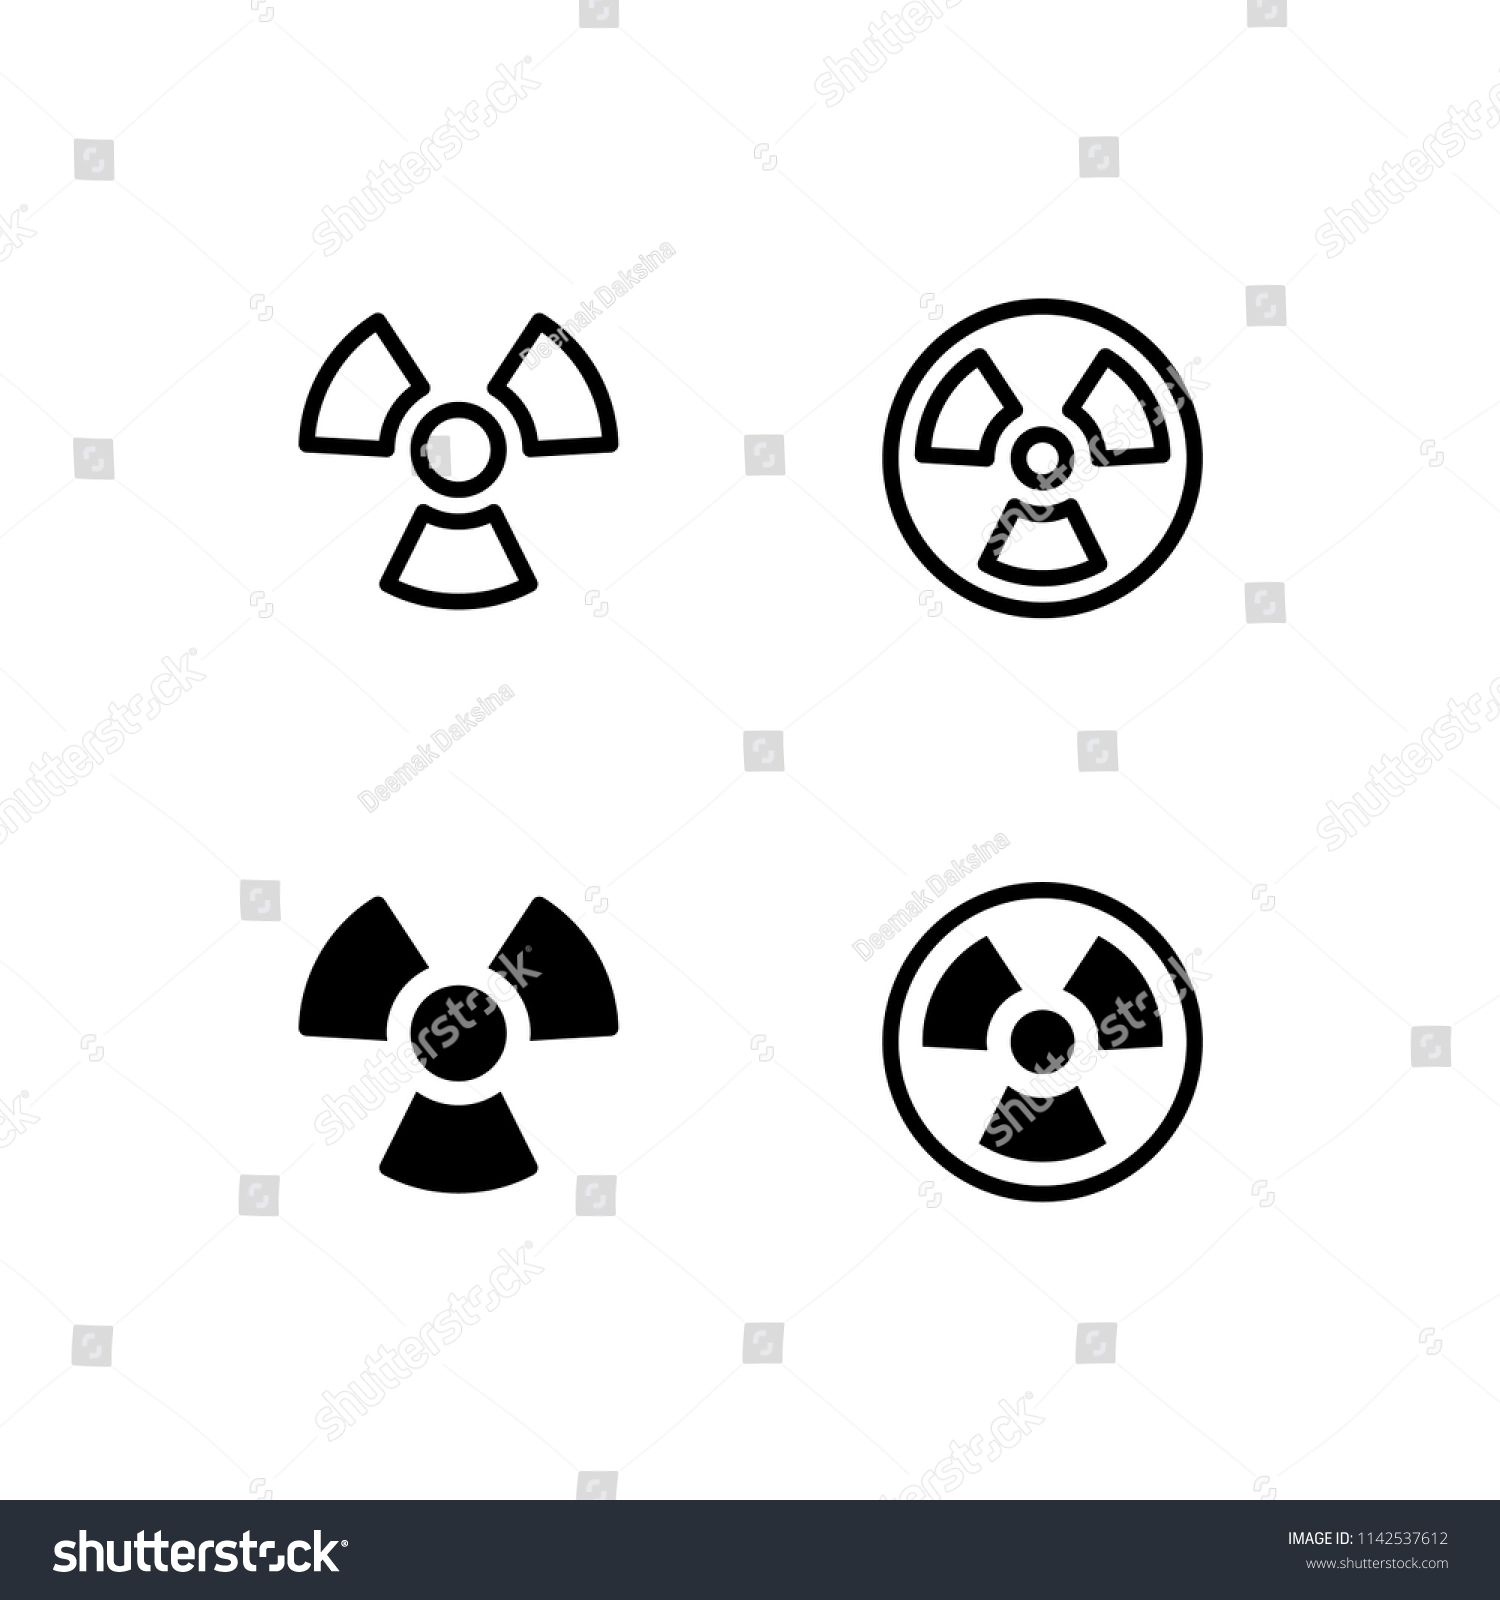 Radioactive Icon Design. radioactive, danger, nuclear